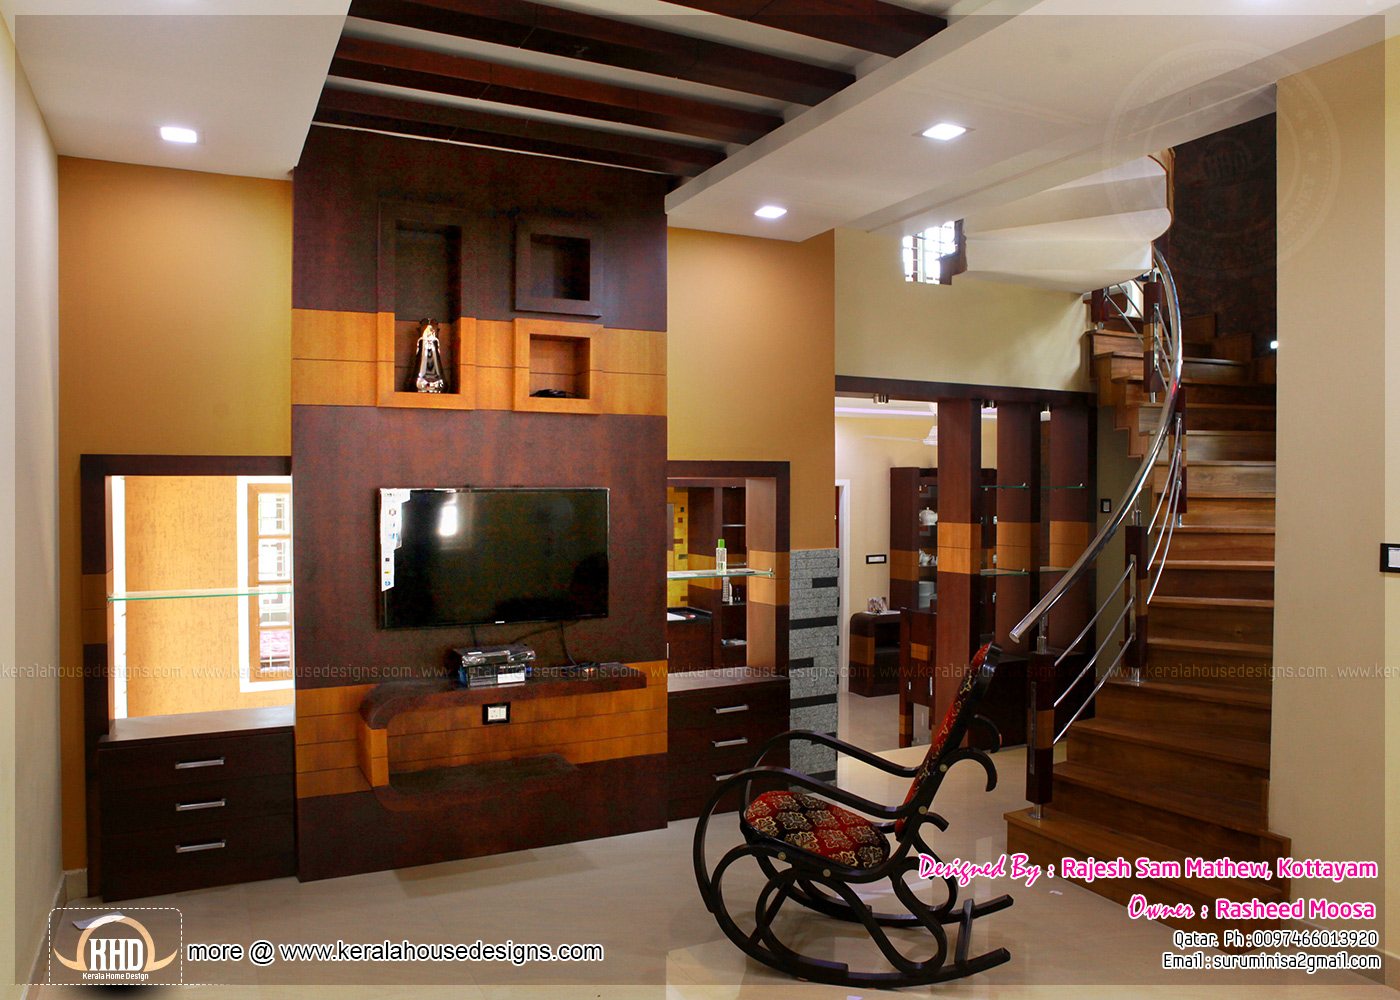 Kerala interior design with photos kerala home design for House plans with interior pictures